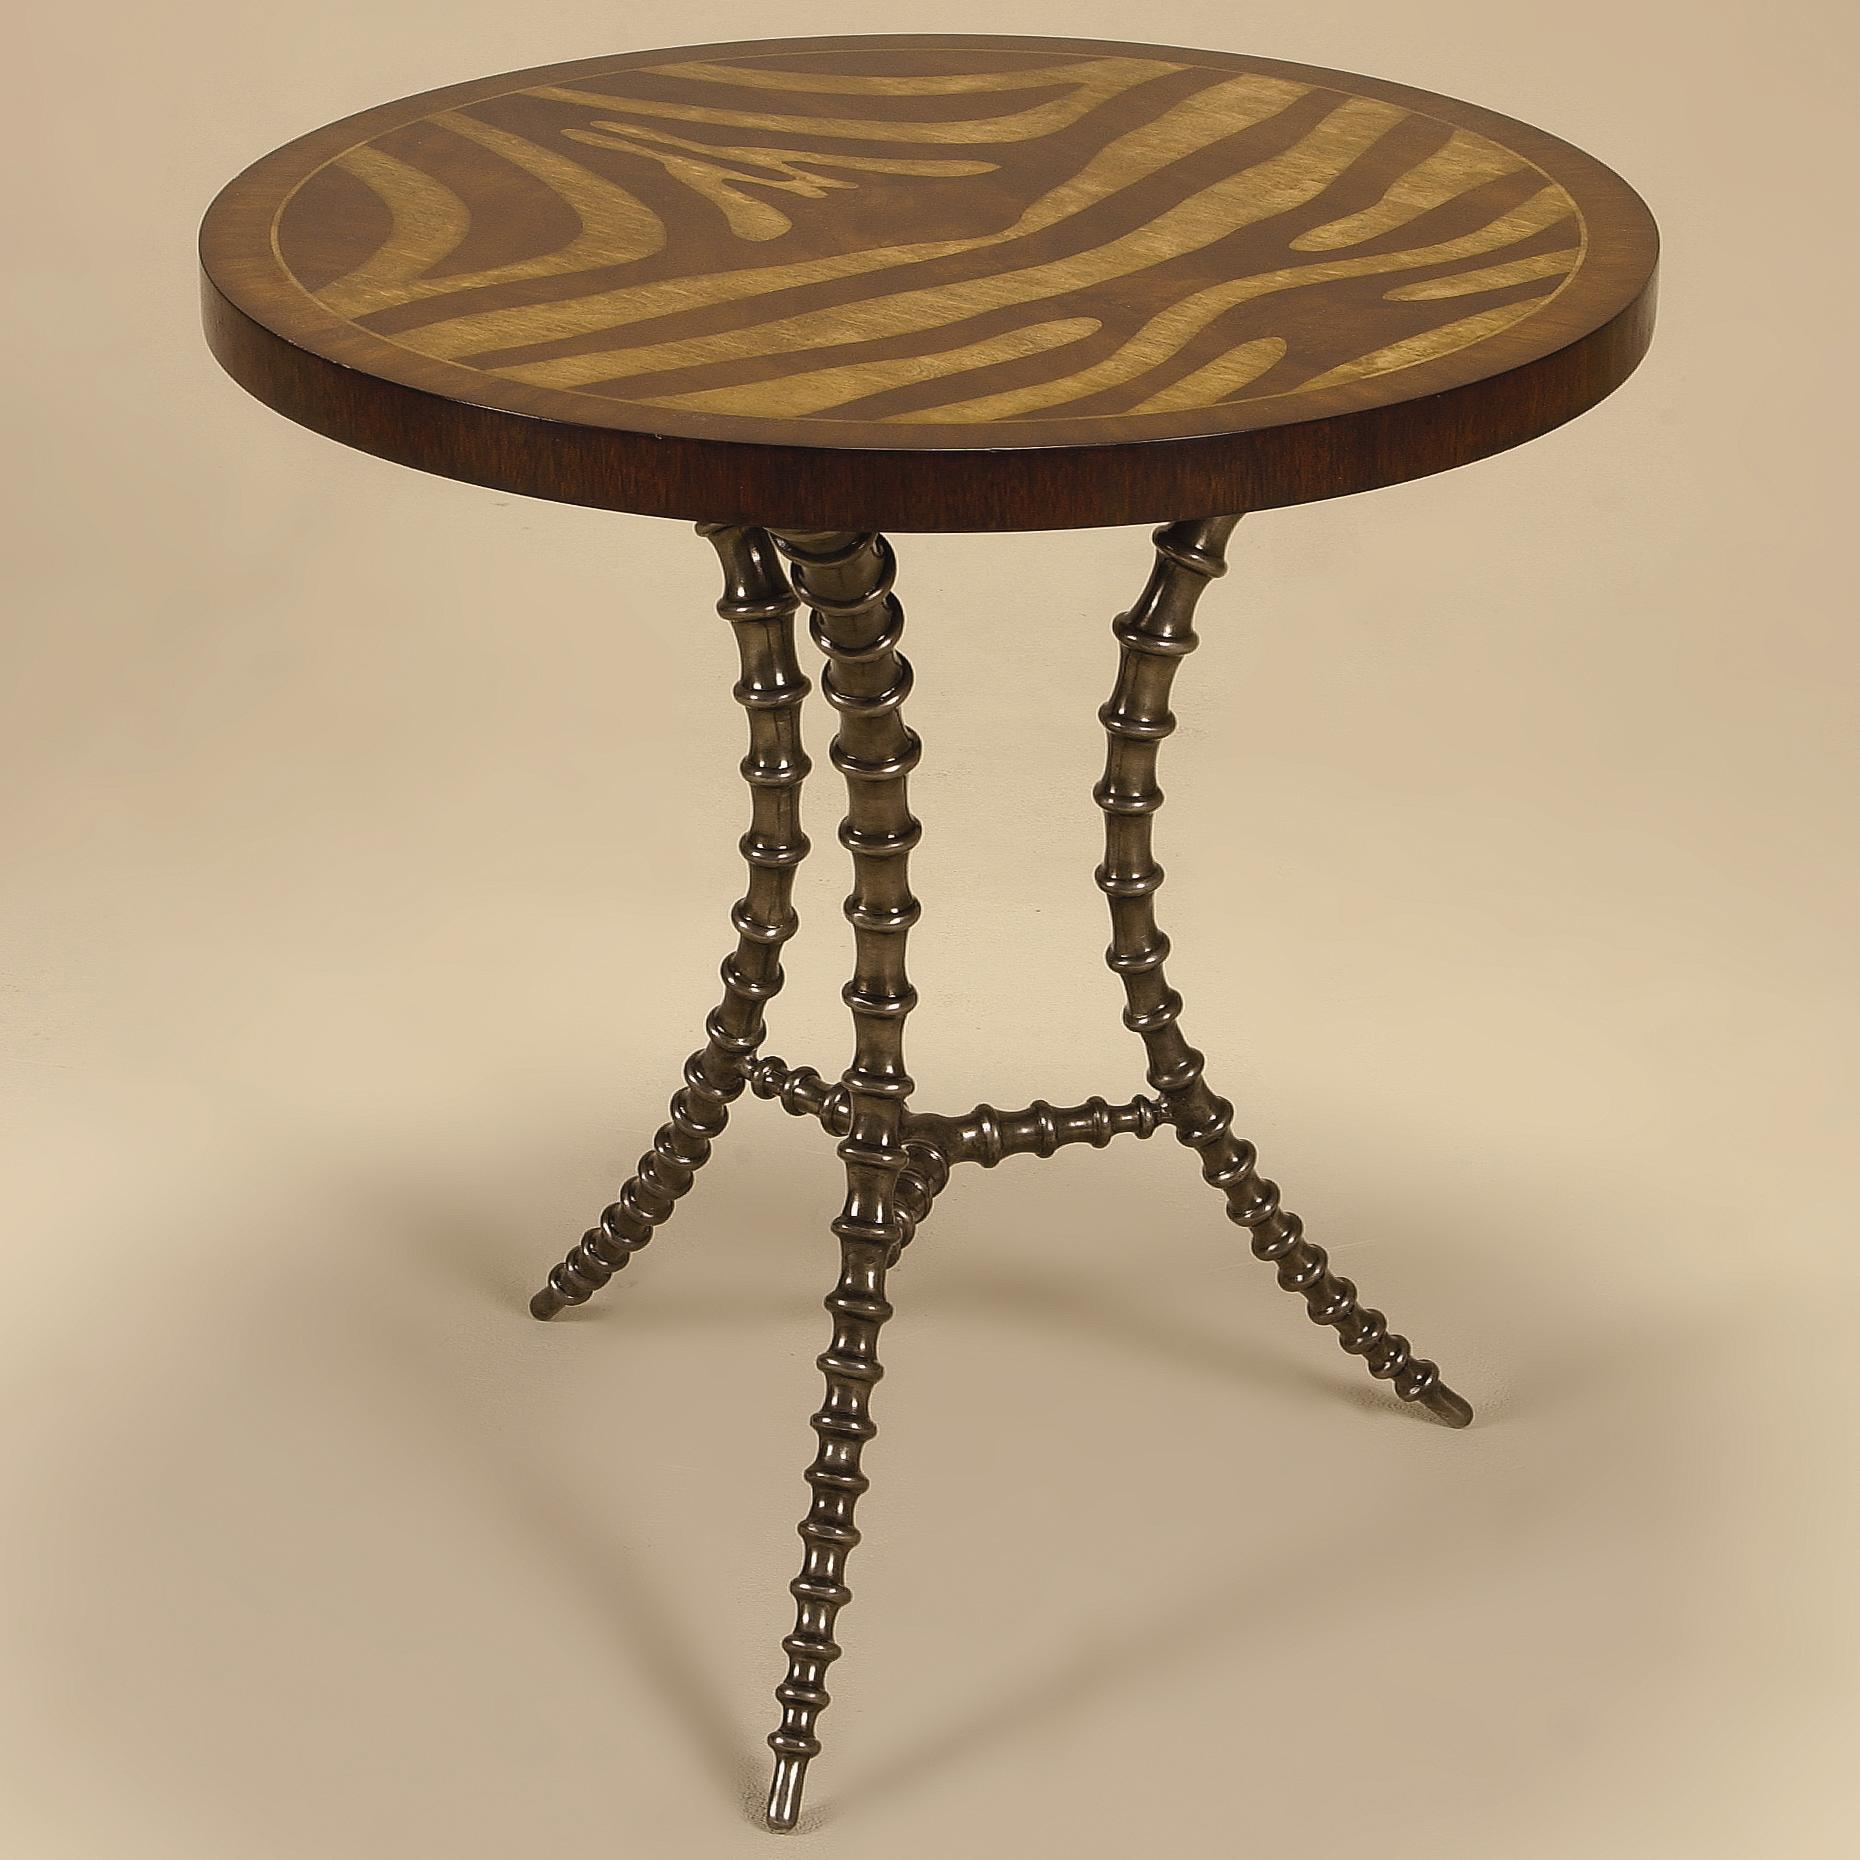 End Tables Light Tone Zebra Marquetry Motif Side Table by Maitland-Smith at Alison Craig Home Furnishings